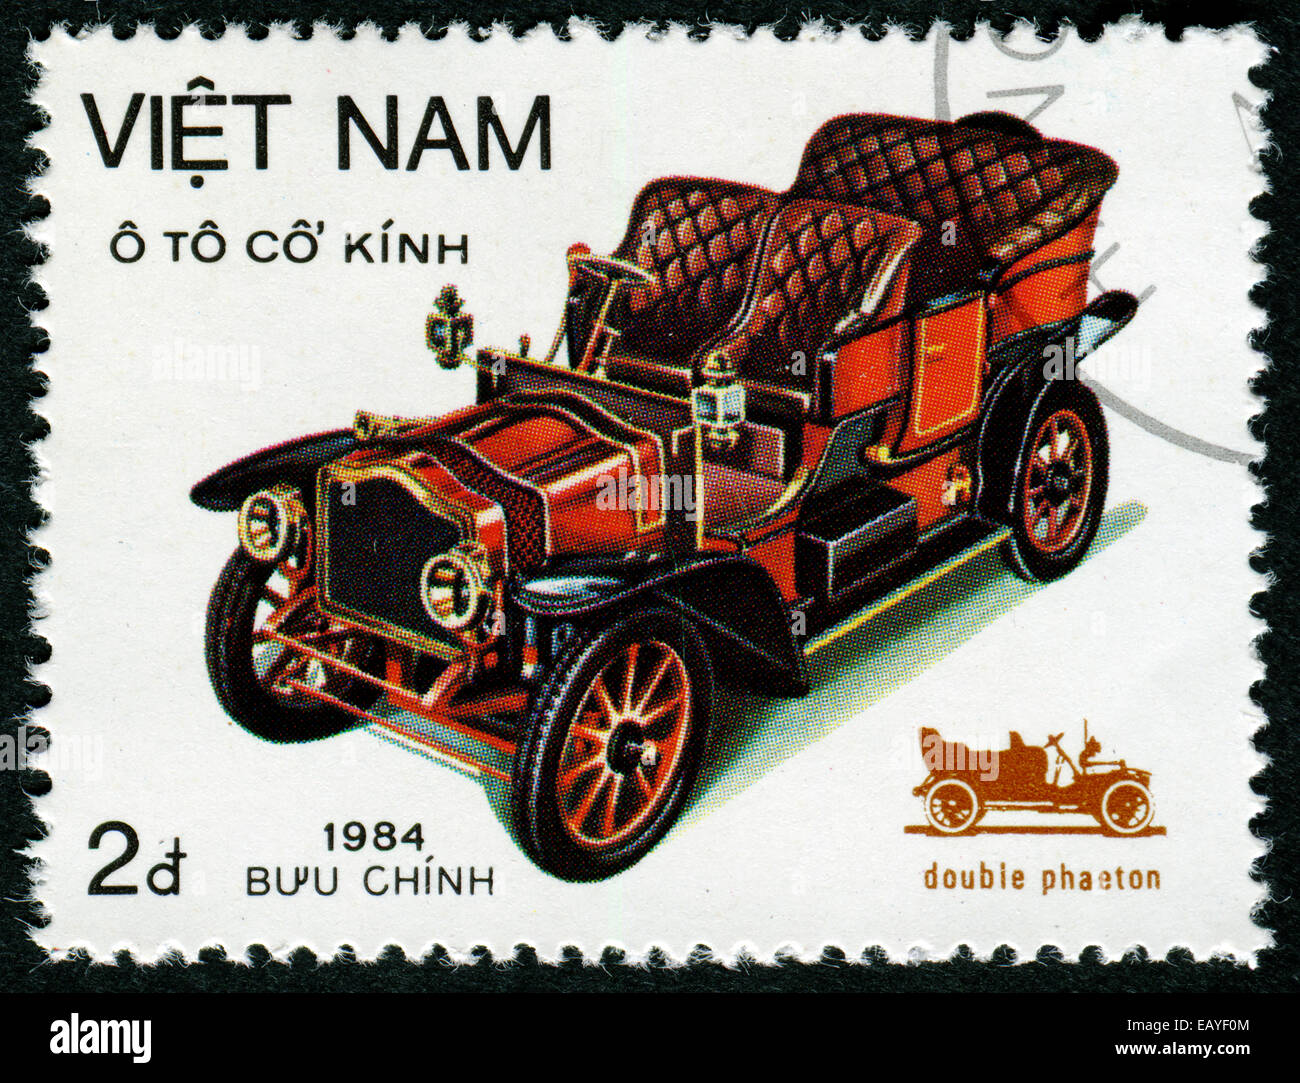 VIETNAM - CIRCA 1984: a stamp printed in Vietnam shows Double Phaeton, Vintage Automobile, circa 1984 - Stock Image